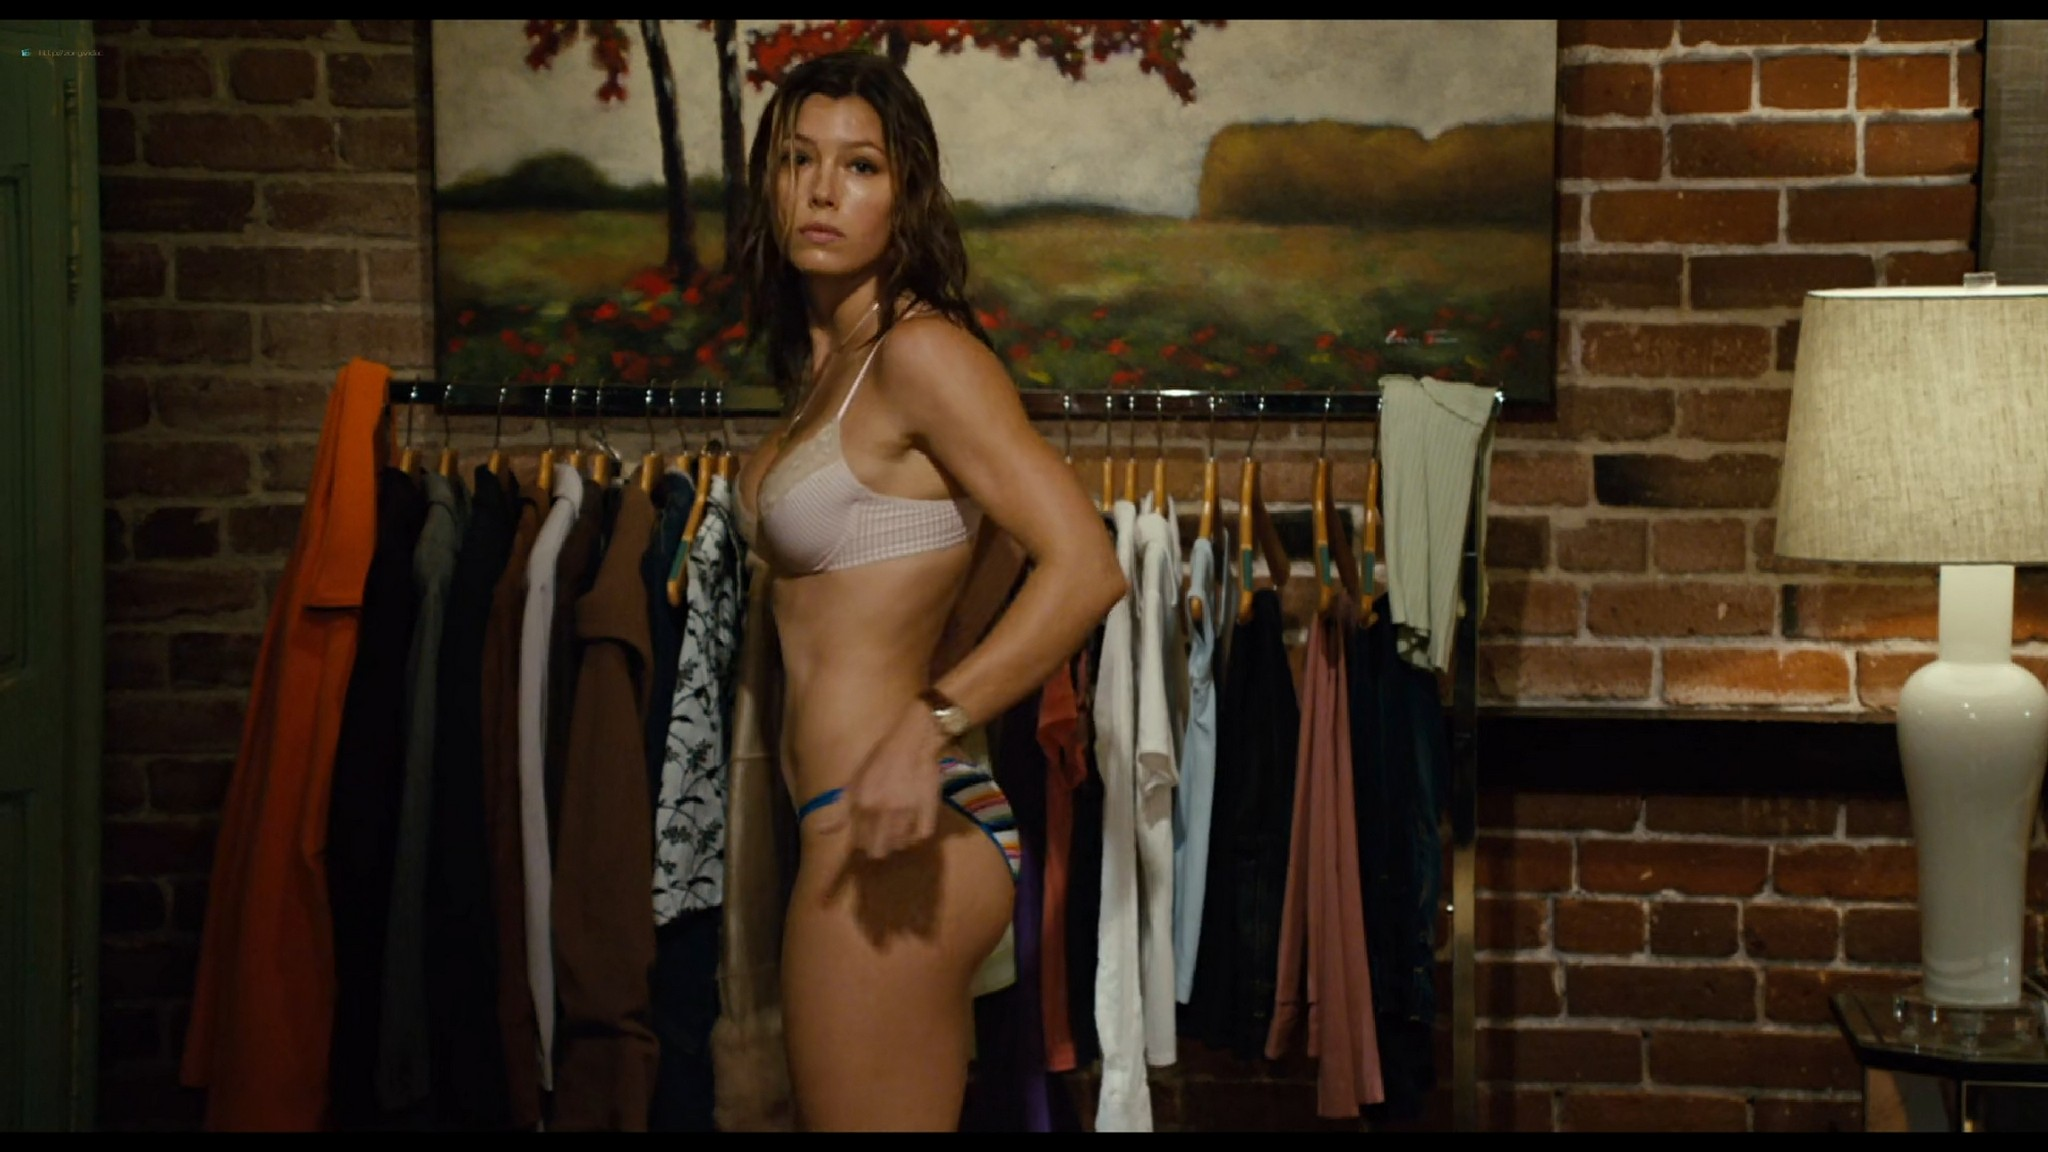 Jessica Biel hot sexy and Adam Sandler groping her boobs others sexy too - I Now Pronounce You Chuck & Larry (2007) HD 1080p BluRay (9)